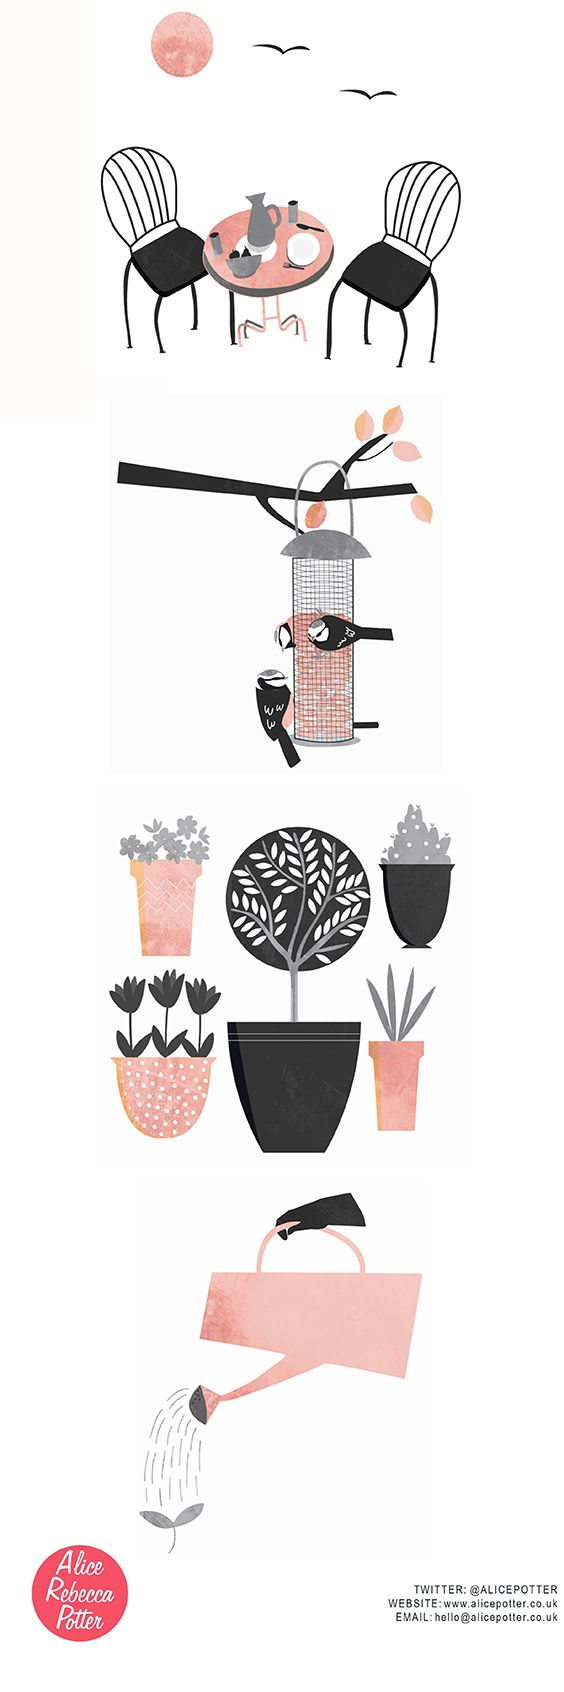 Garden Illustrations and editorial spots / Alfresco dining / Bird Feeder / Potted Plants / Watering Plants / Illustrations by Alice Potter